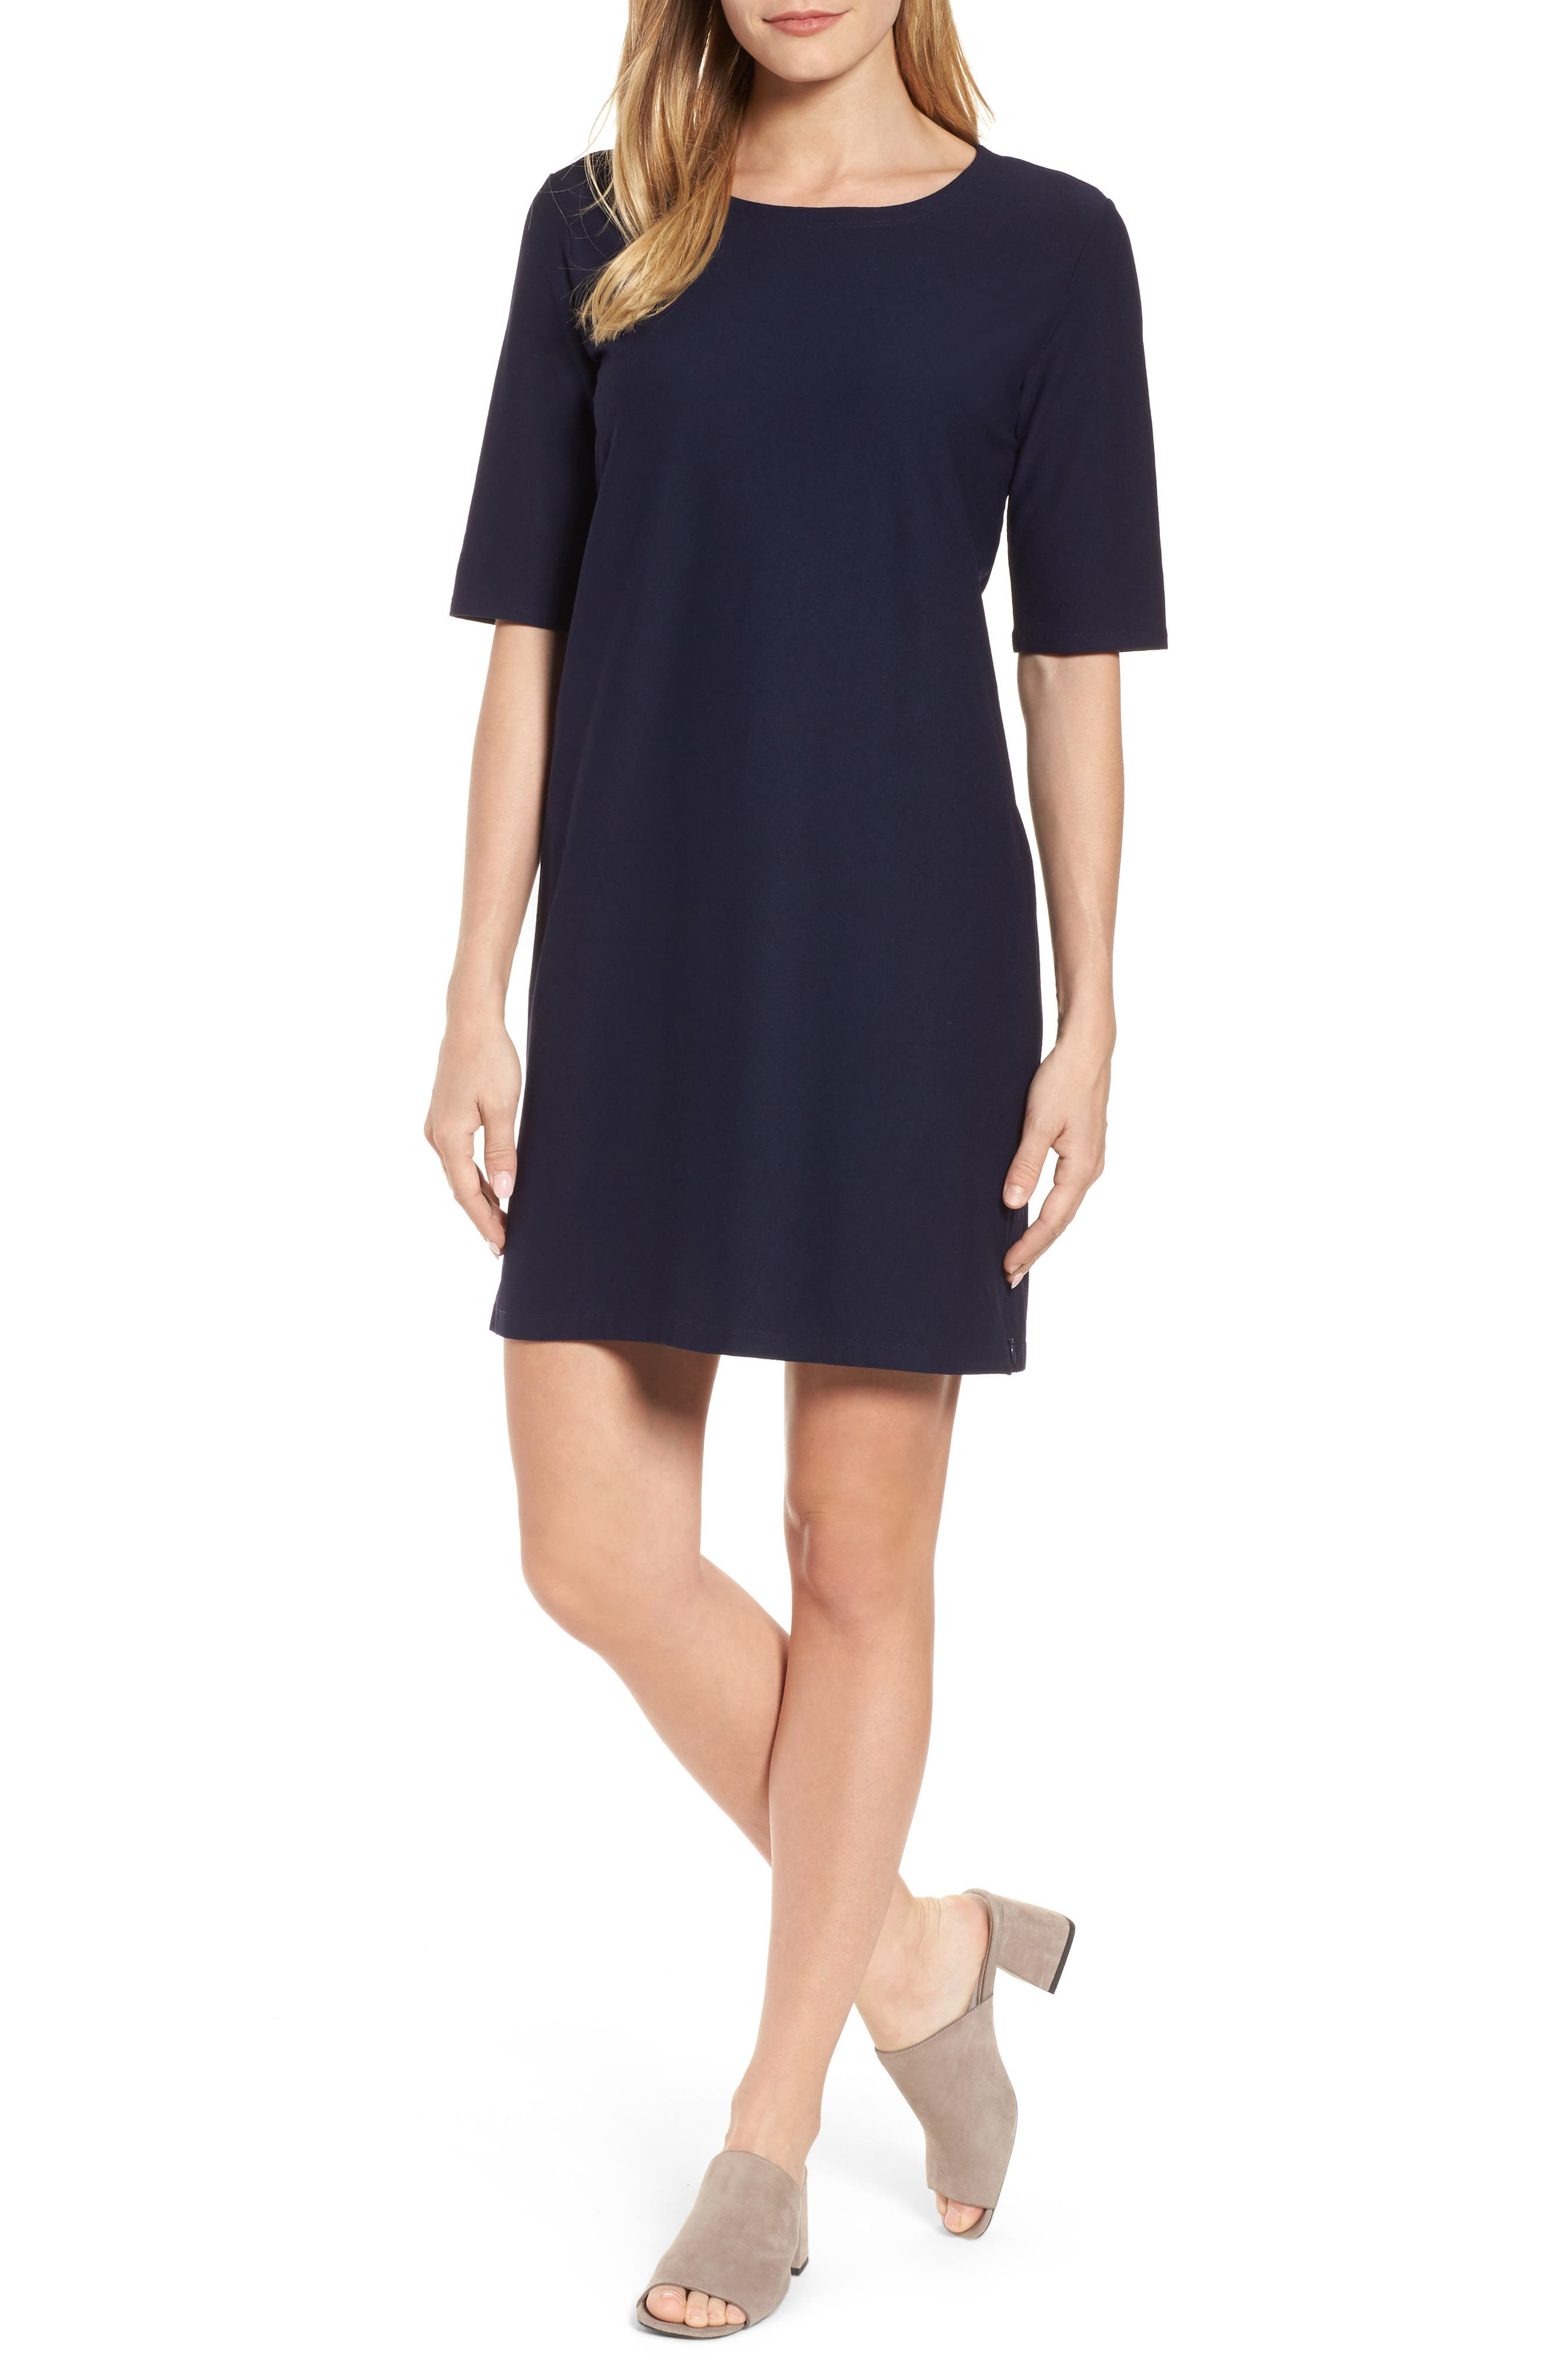 Eileen Fisher Stretch Knit Shift Dress (Regular & Petite)